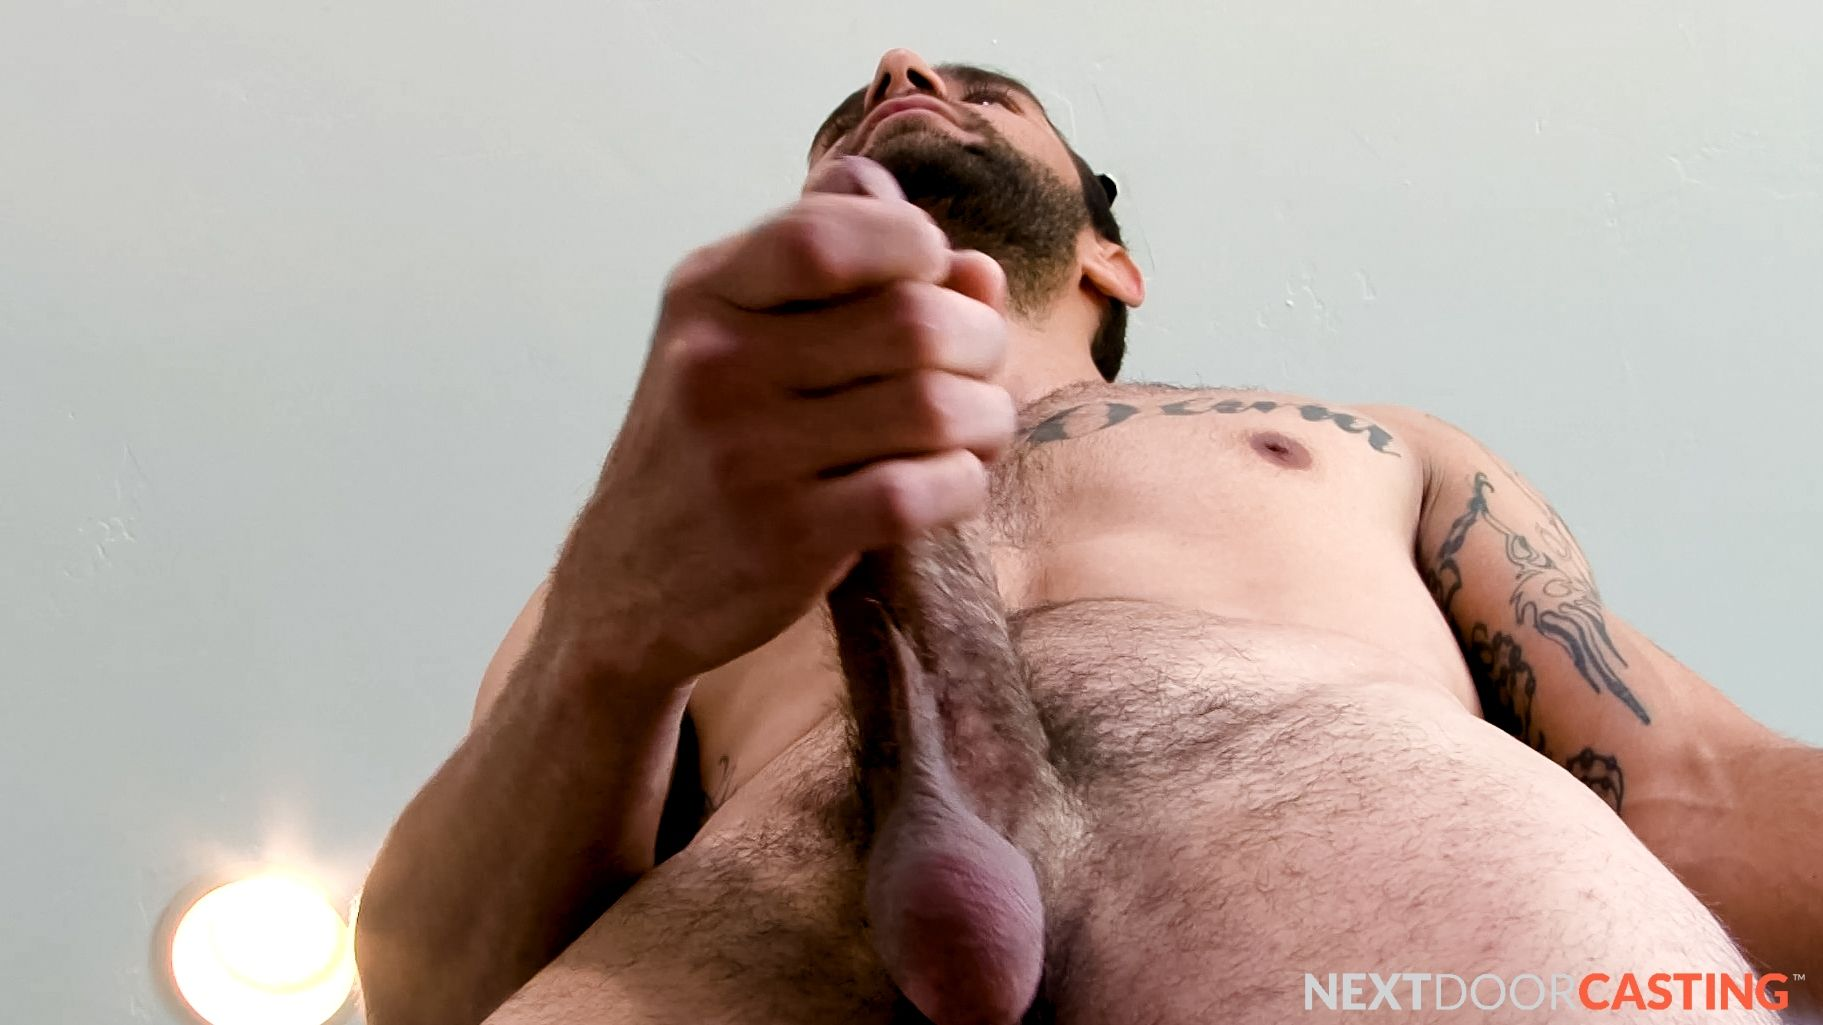 Hung Stud Brian Adams Whips Out His Thick Long Horse Dick Fucking Logan Cross Tight Bubble Ass Free Naked Men Big Dicks